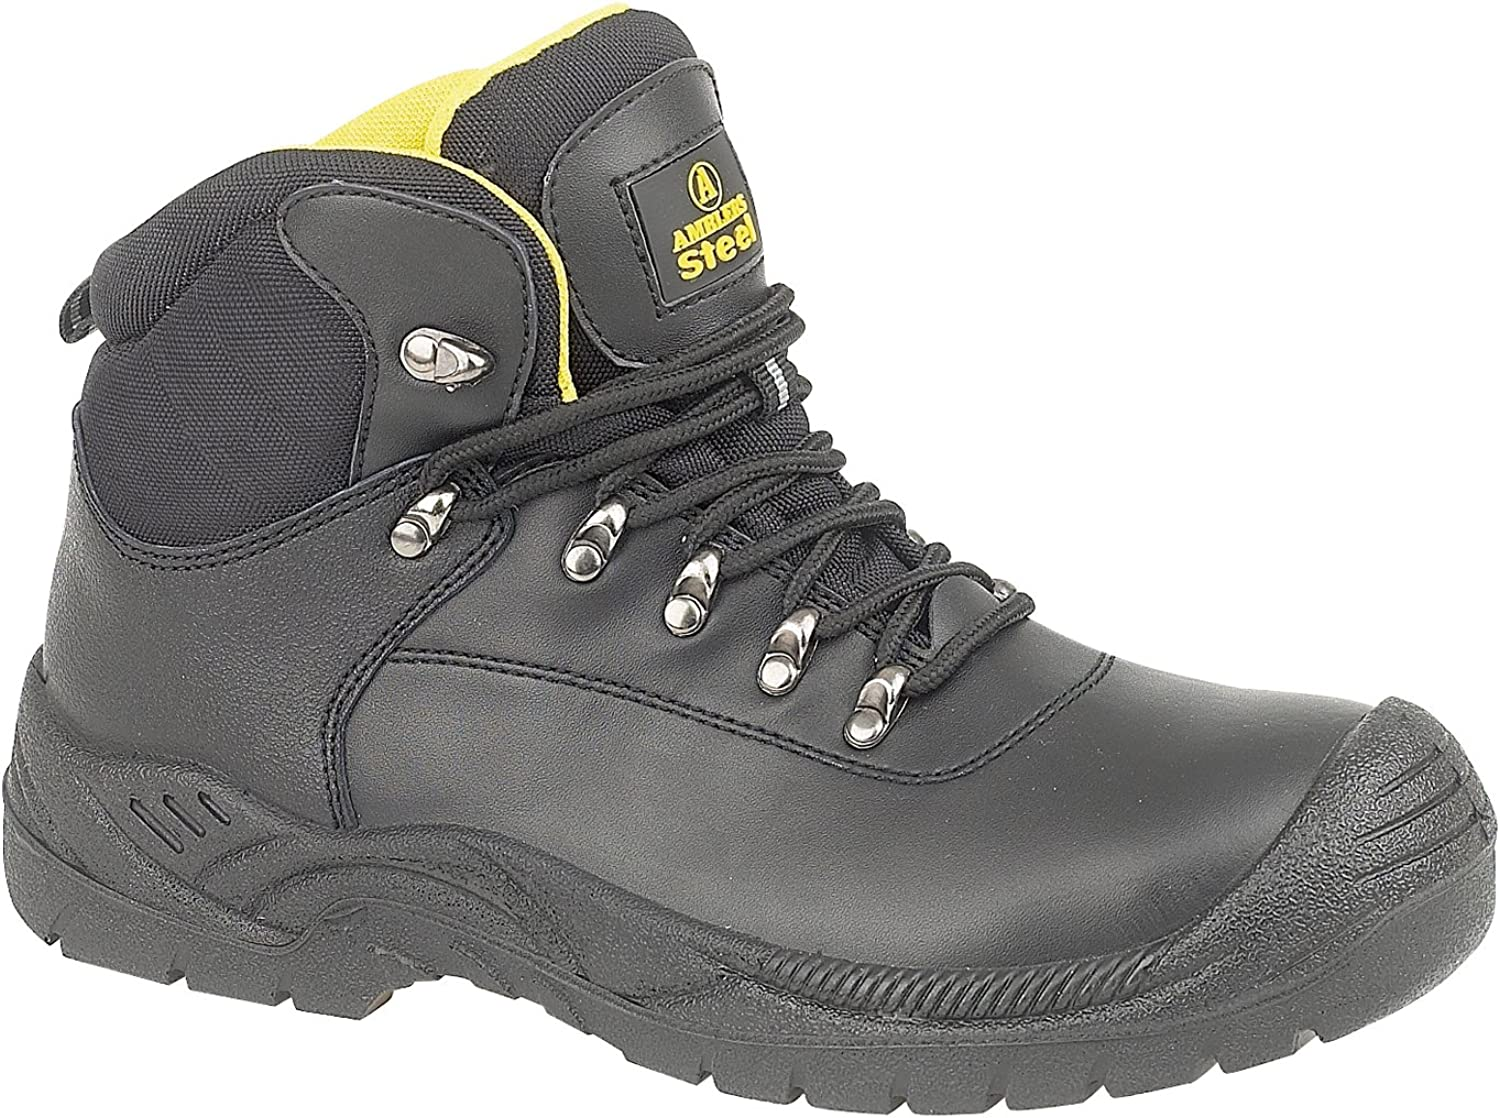 Amblers Steel FS220 W P Safety Mens Boots